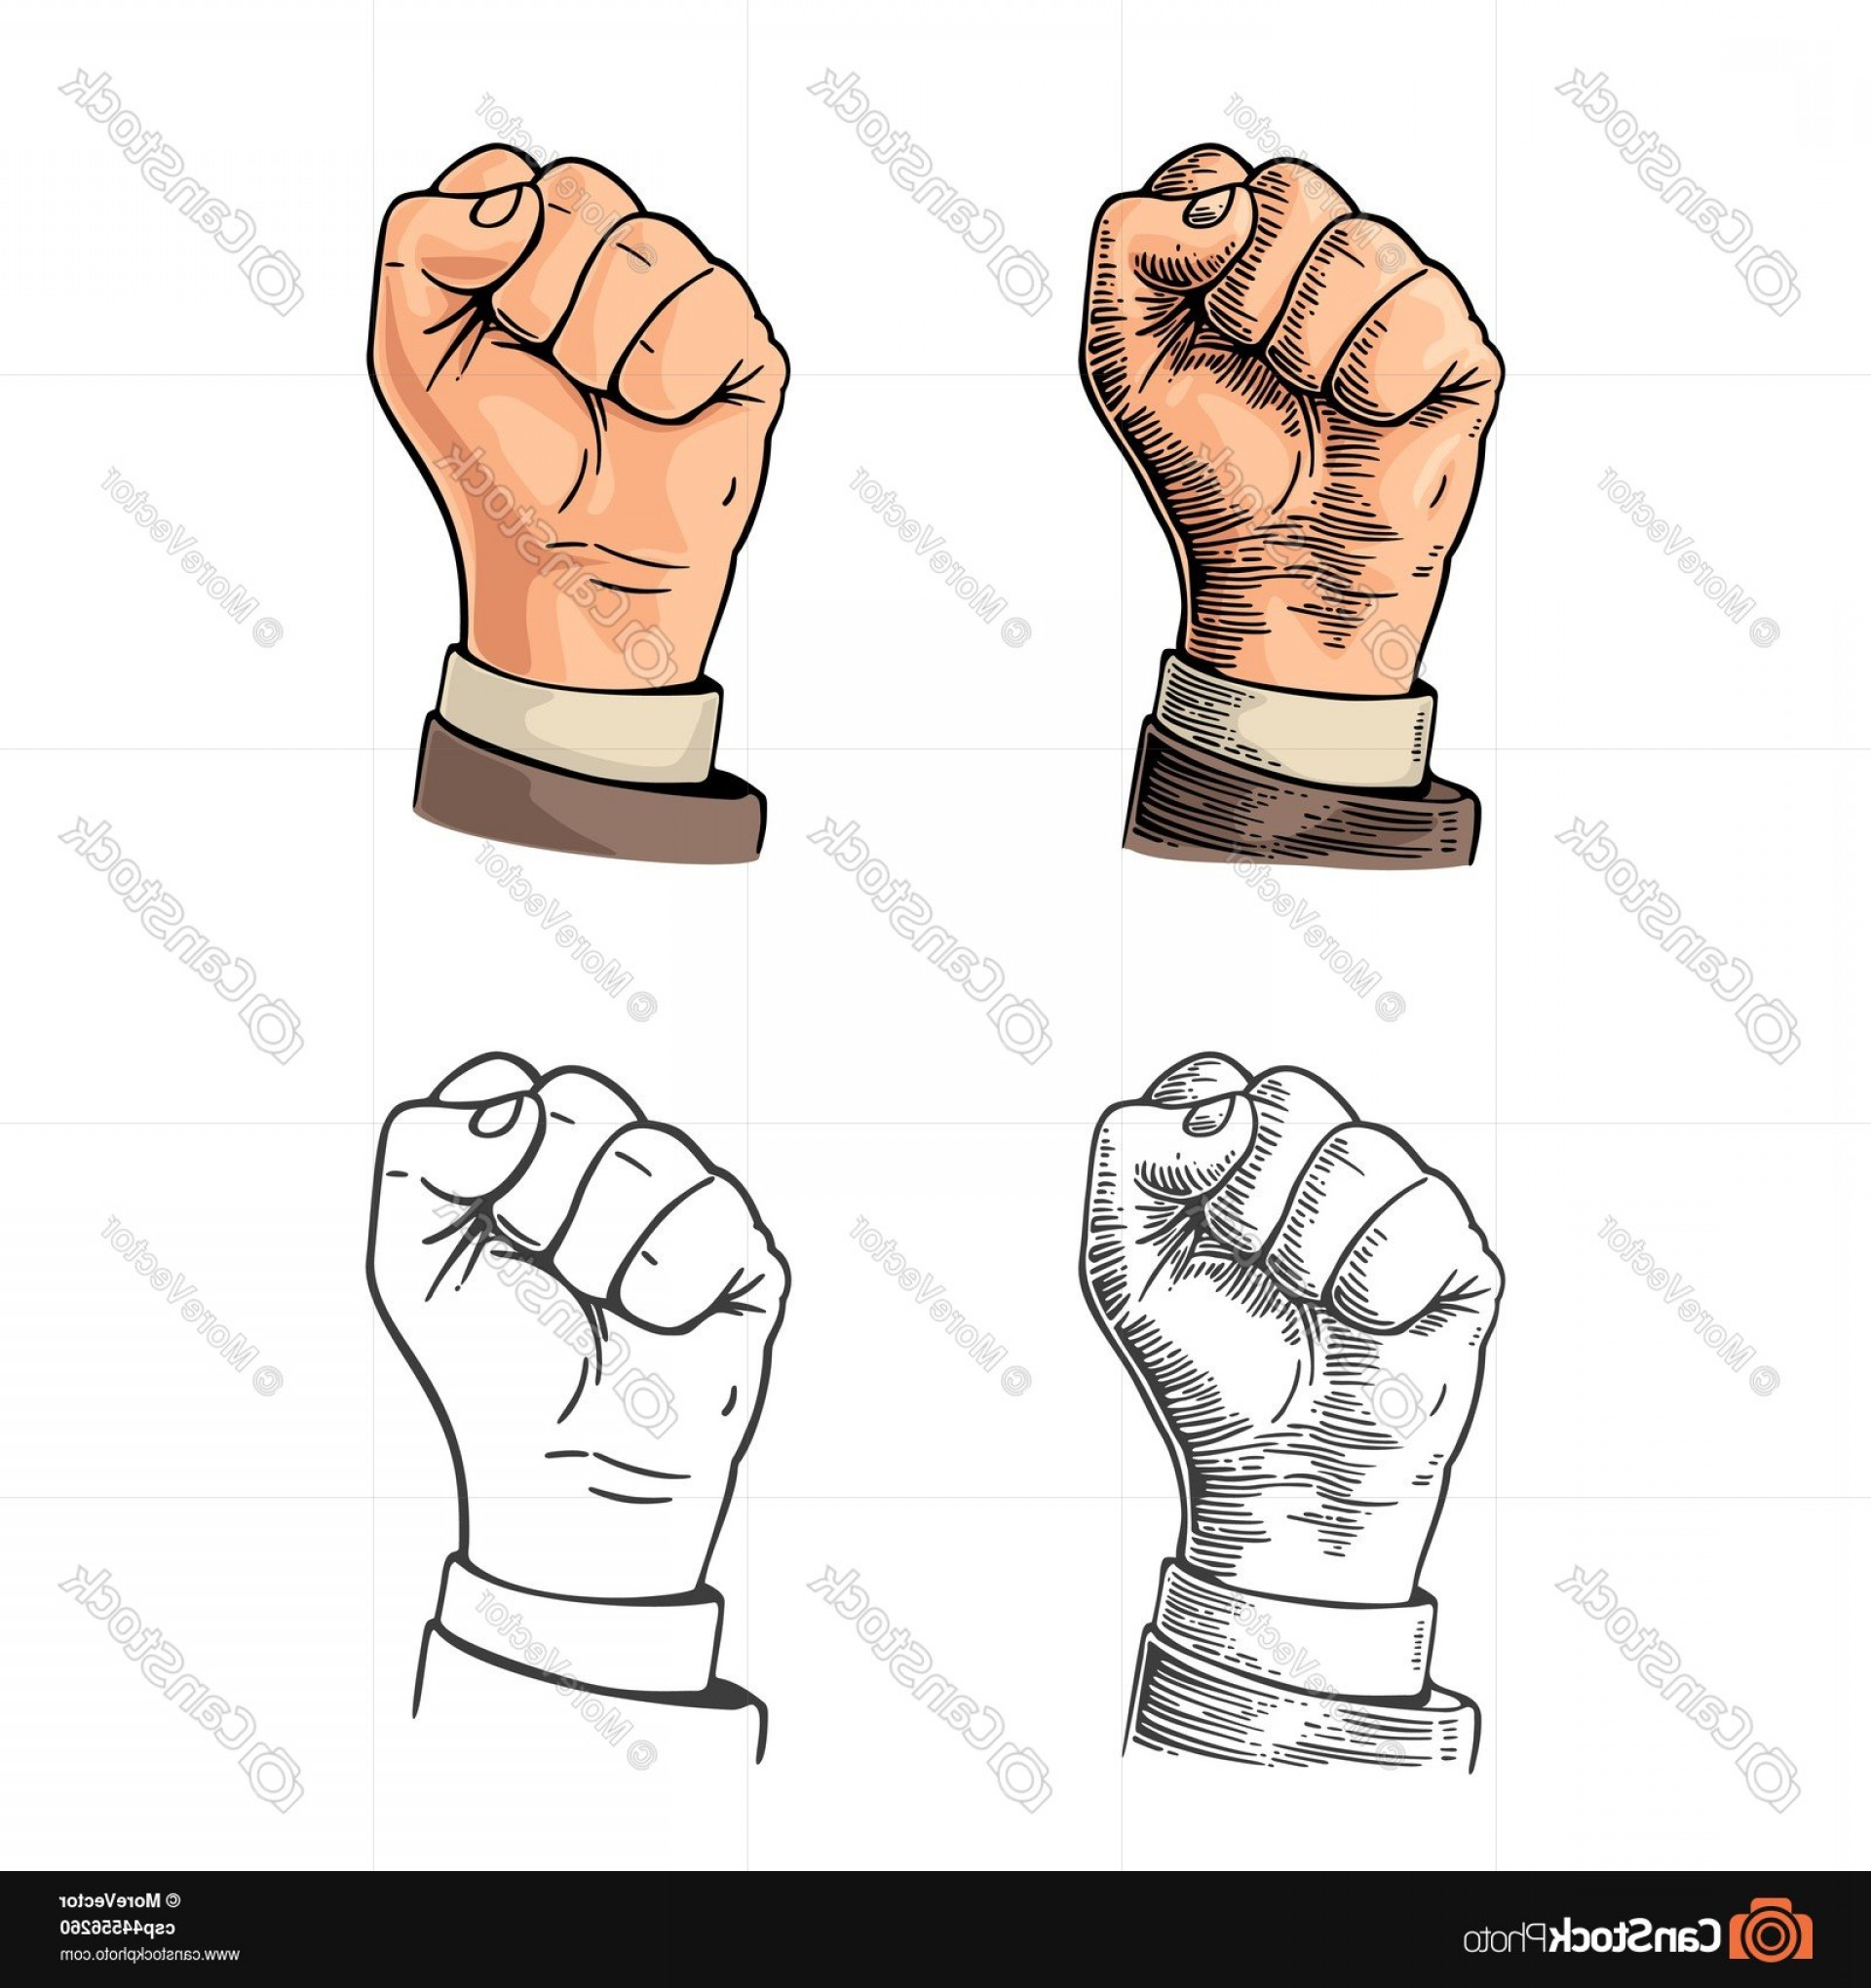 Hand Fist Vector: Human Hand With A Clenched Fist Vector